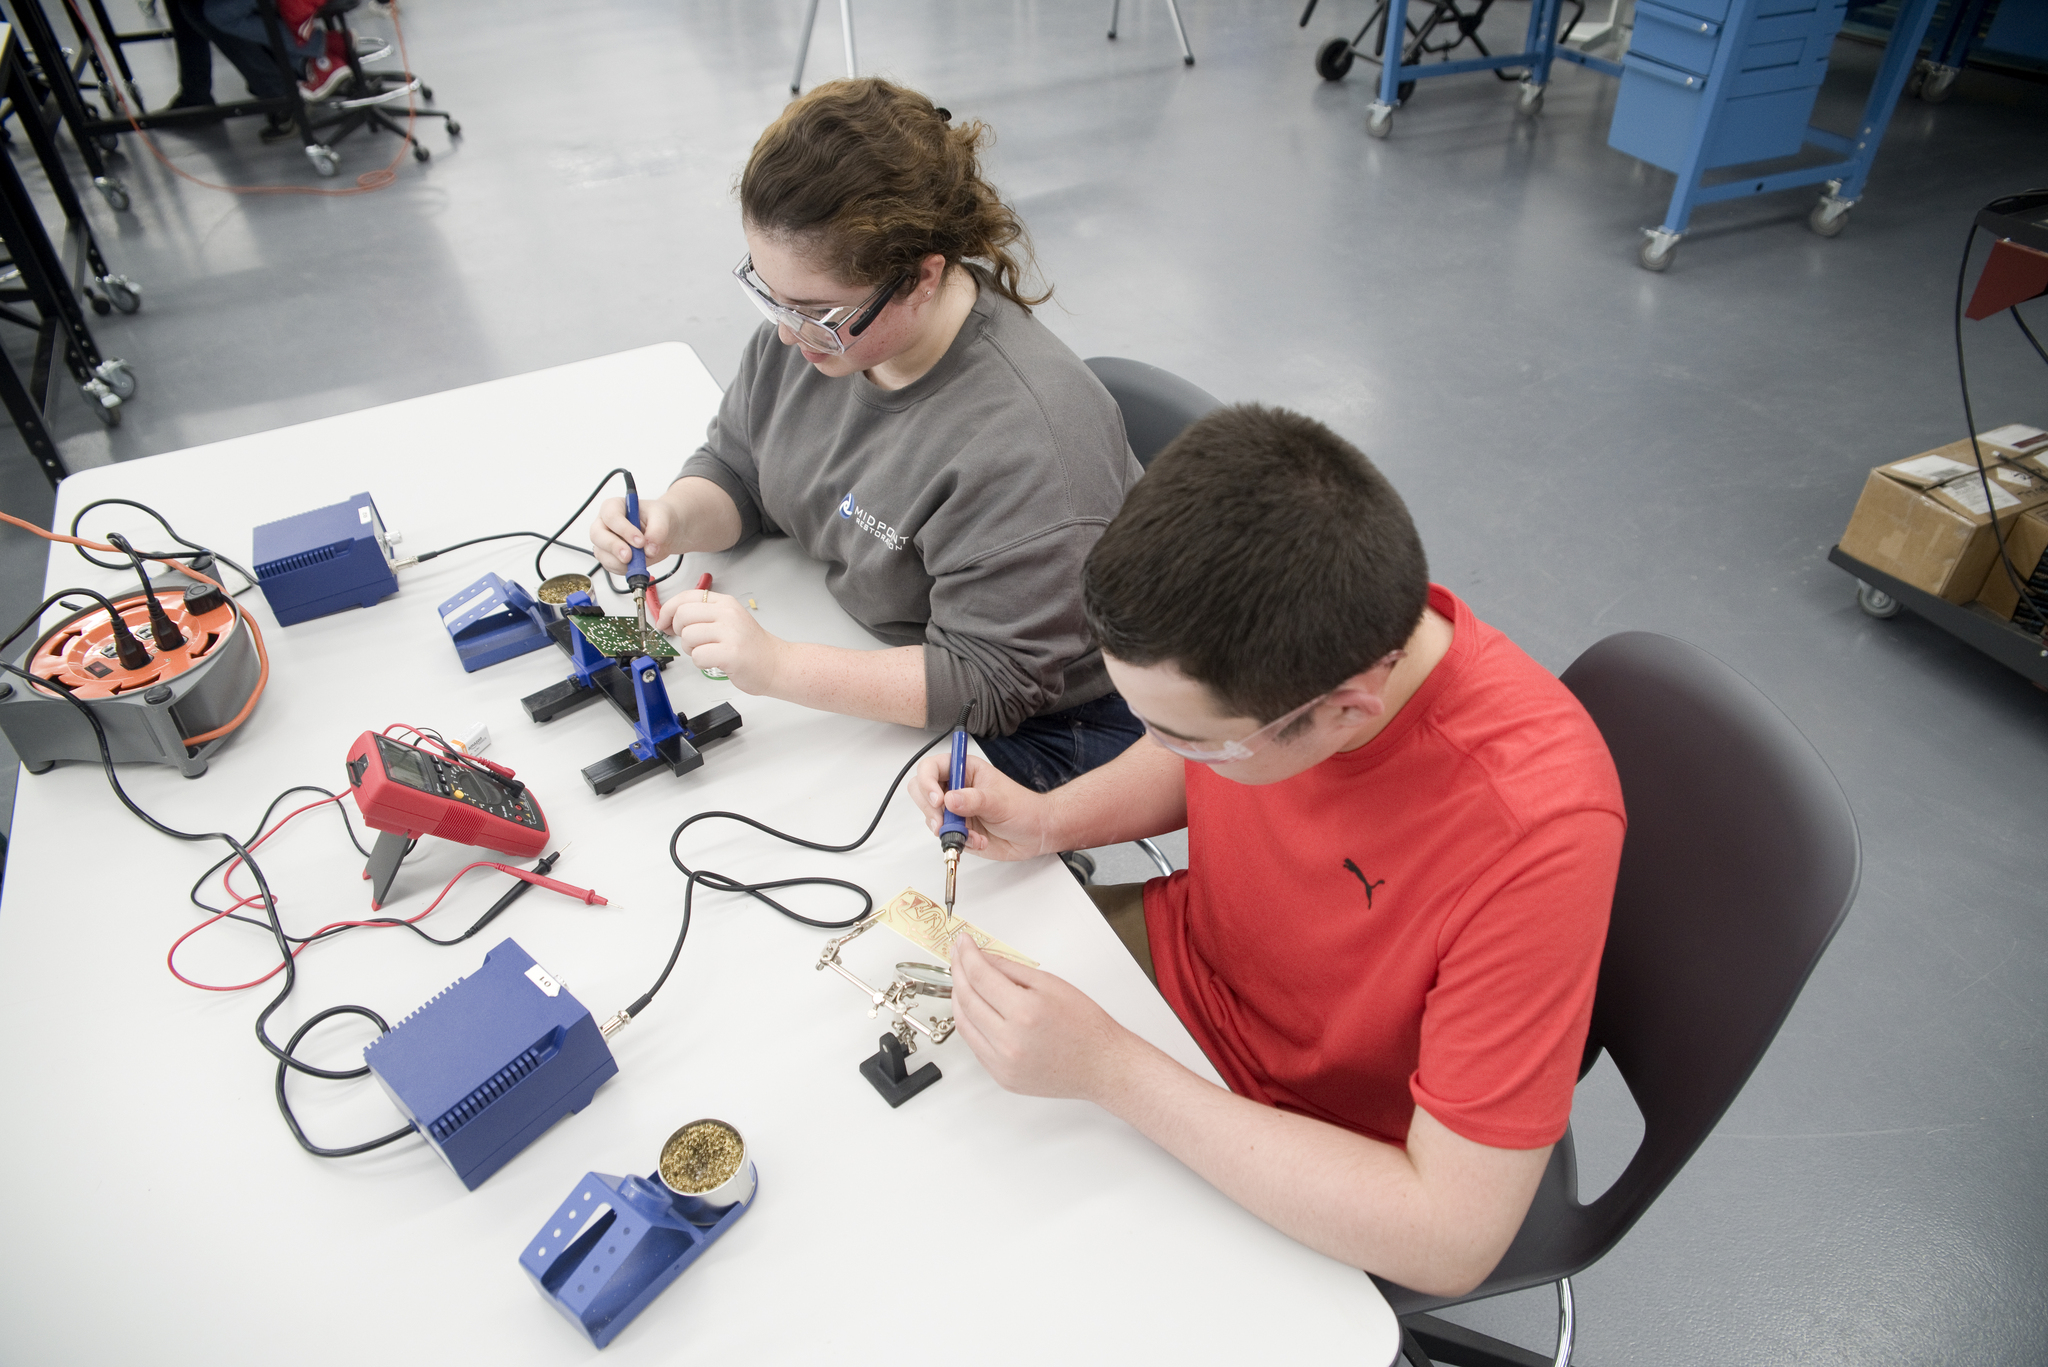 two students soldering electronics